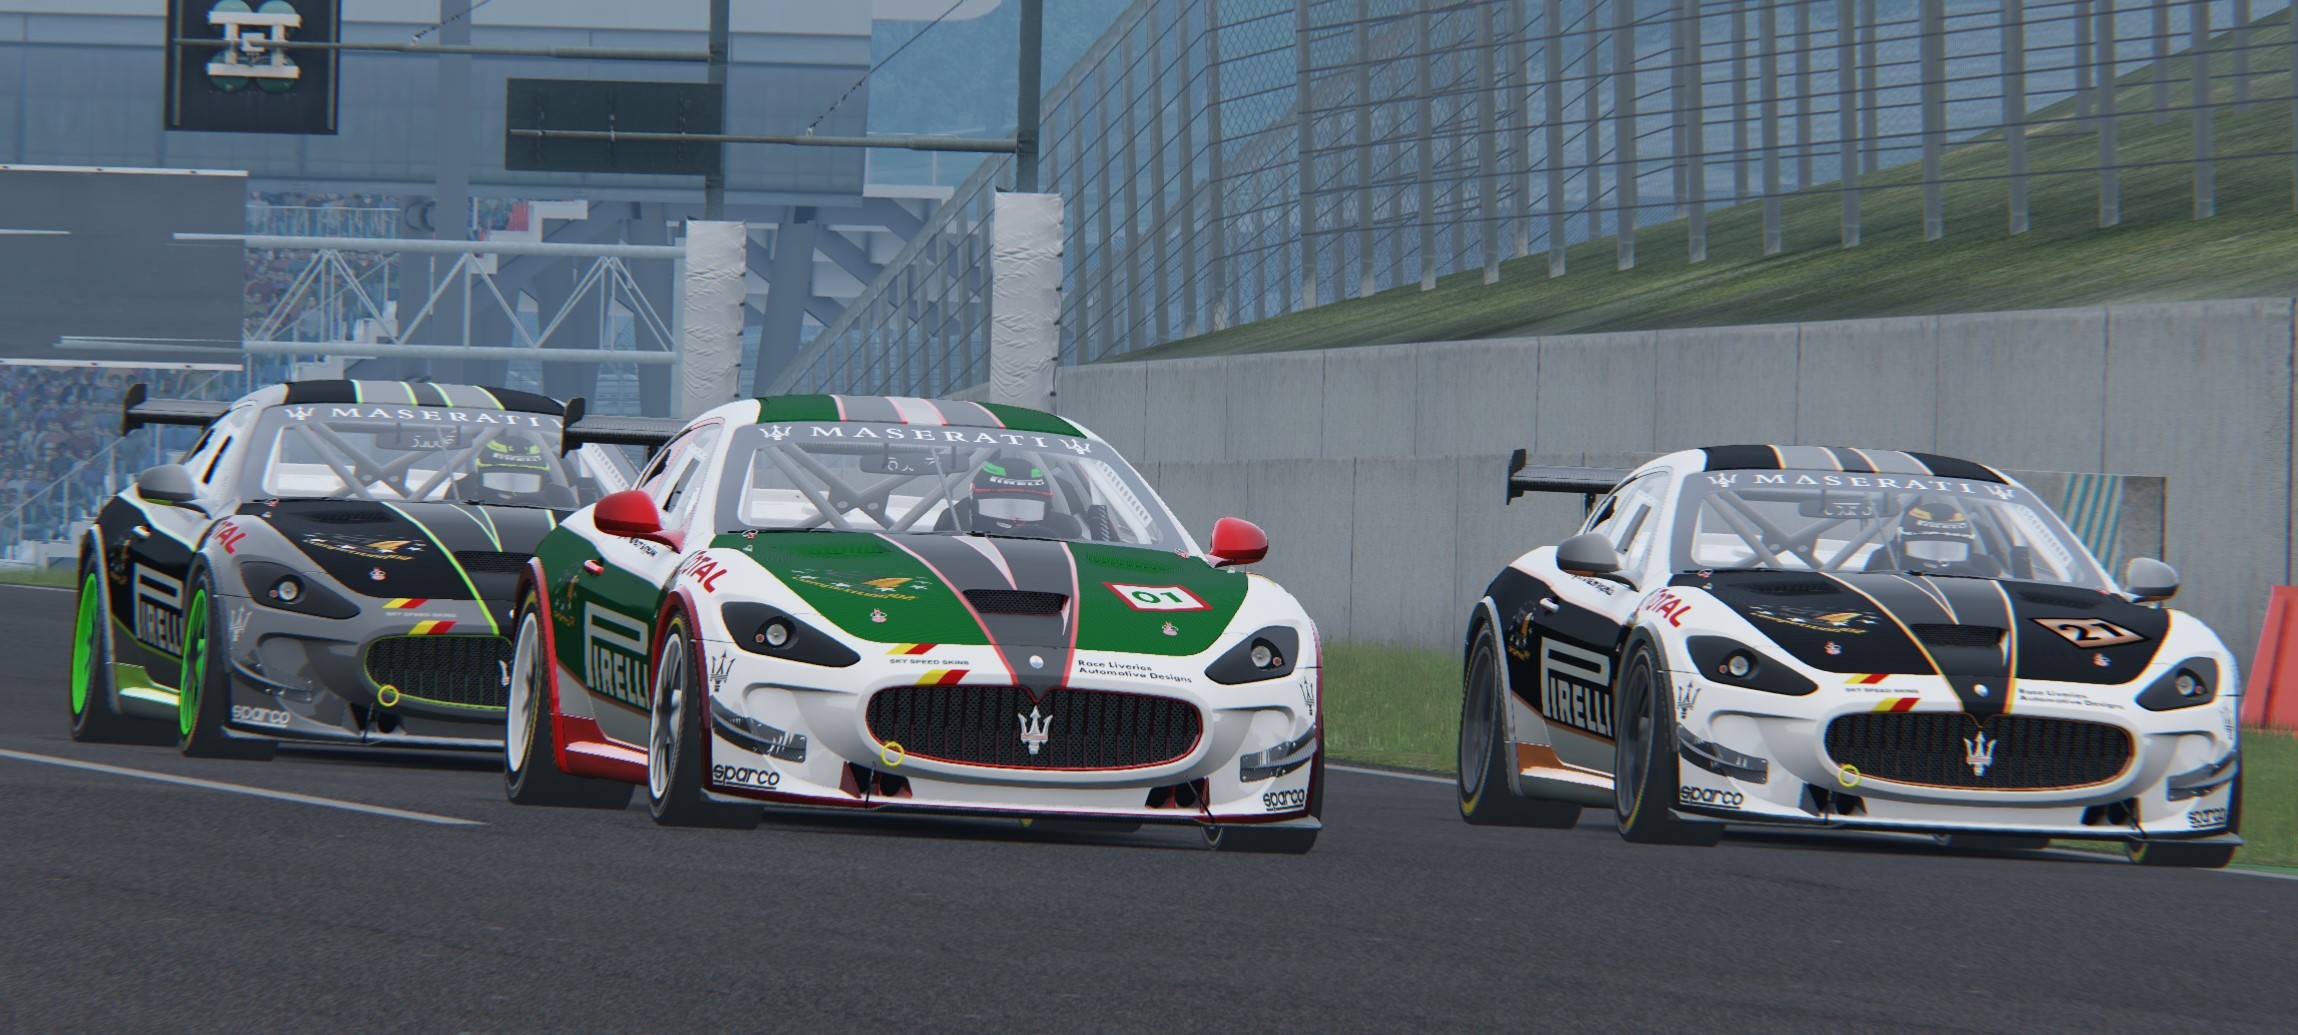 Screenshot_ks_maserati_gt_mc_gt4_mugello_4-8-116-10-46-0.jpg